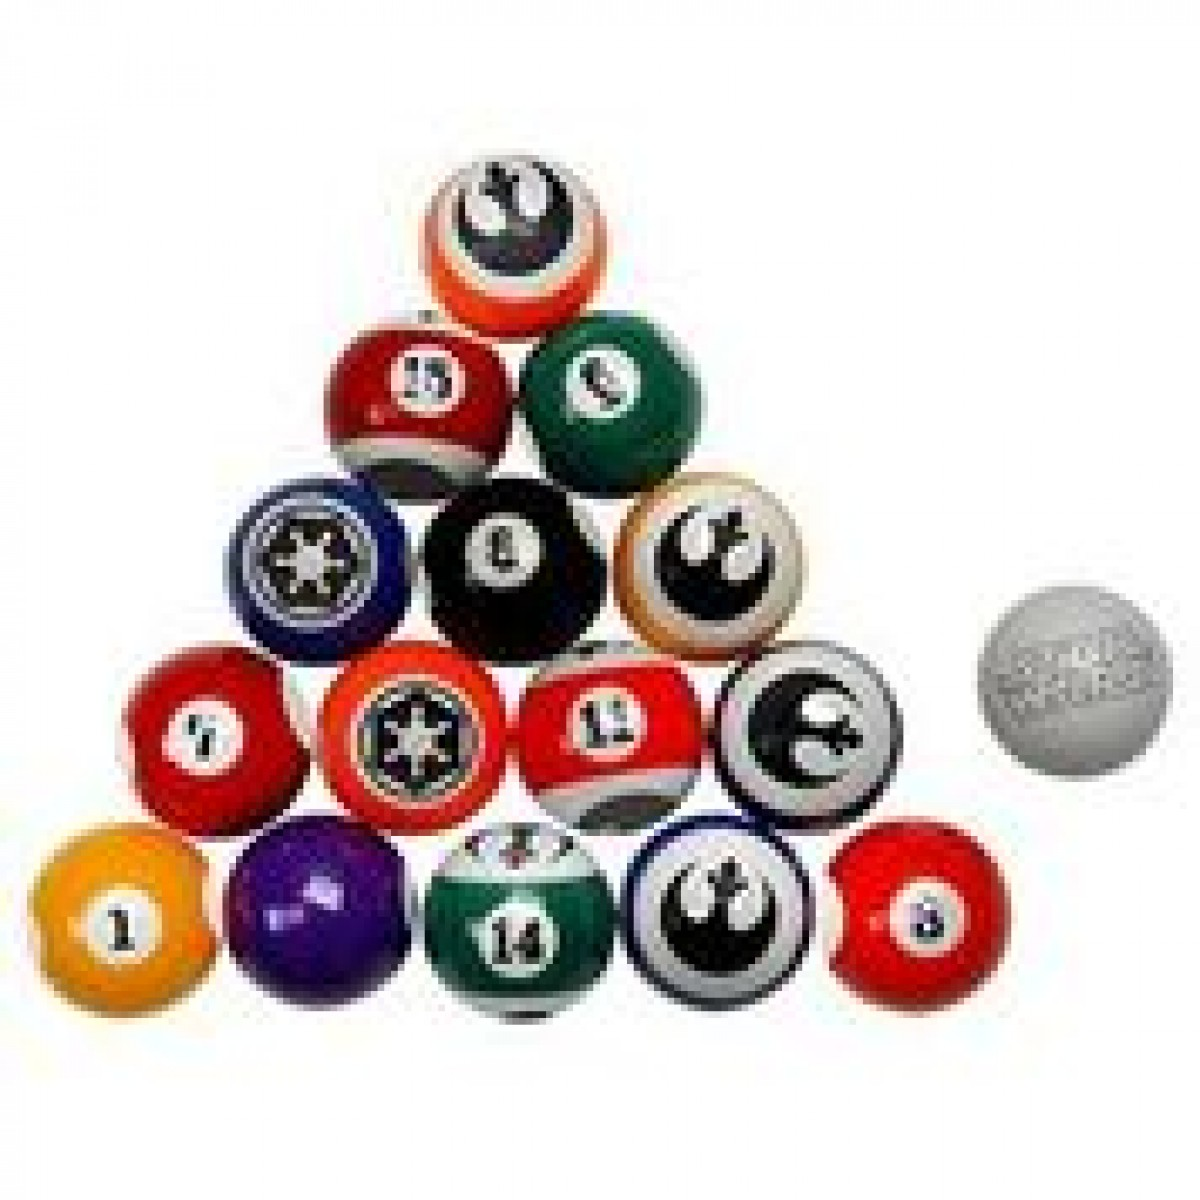 1200x1200 Star Wars Pool Balls